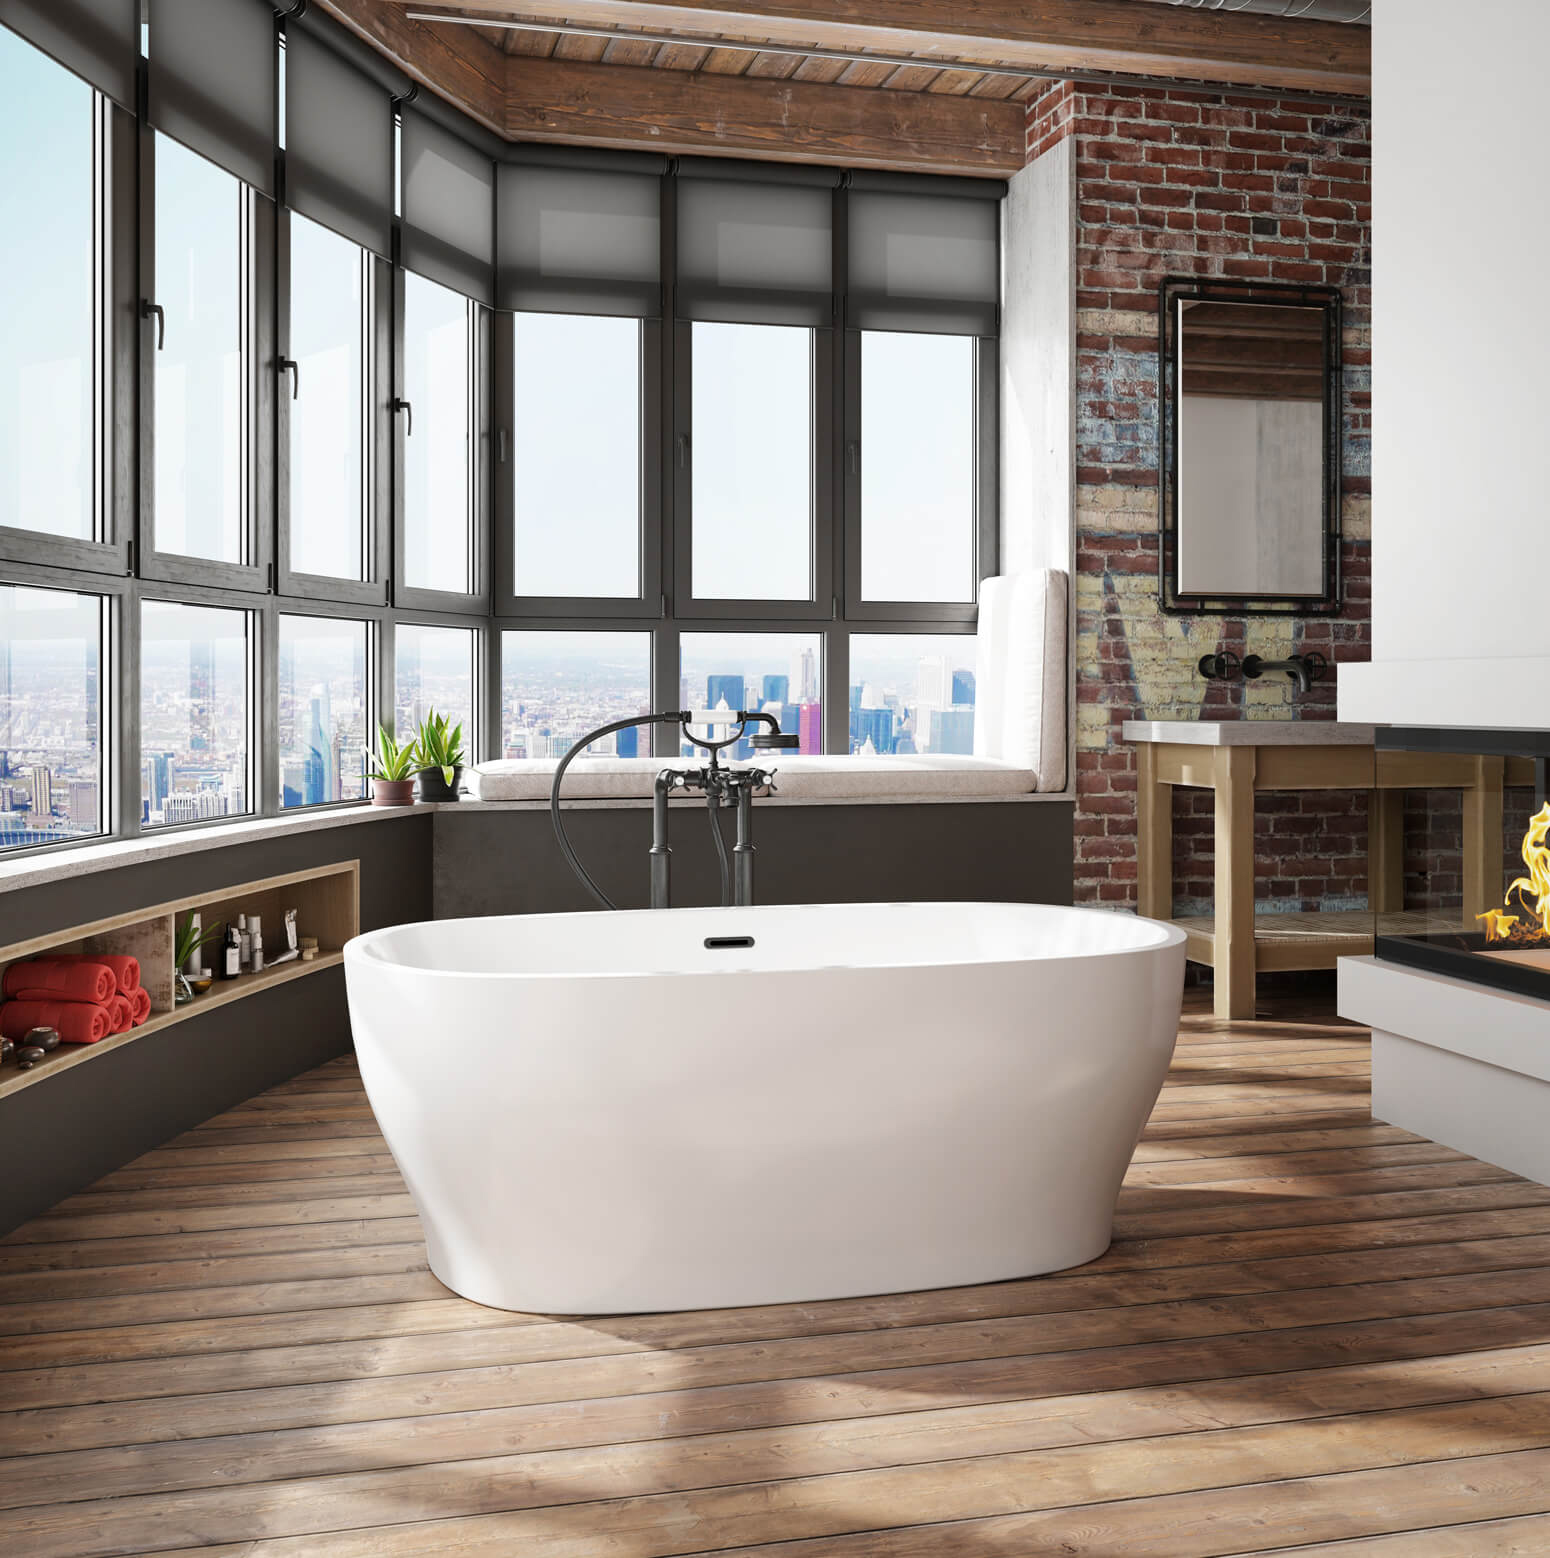 Bainultra Vibe Oval 5830 freestanding air jet bathtub for your modern bathroom